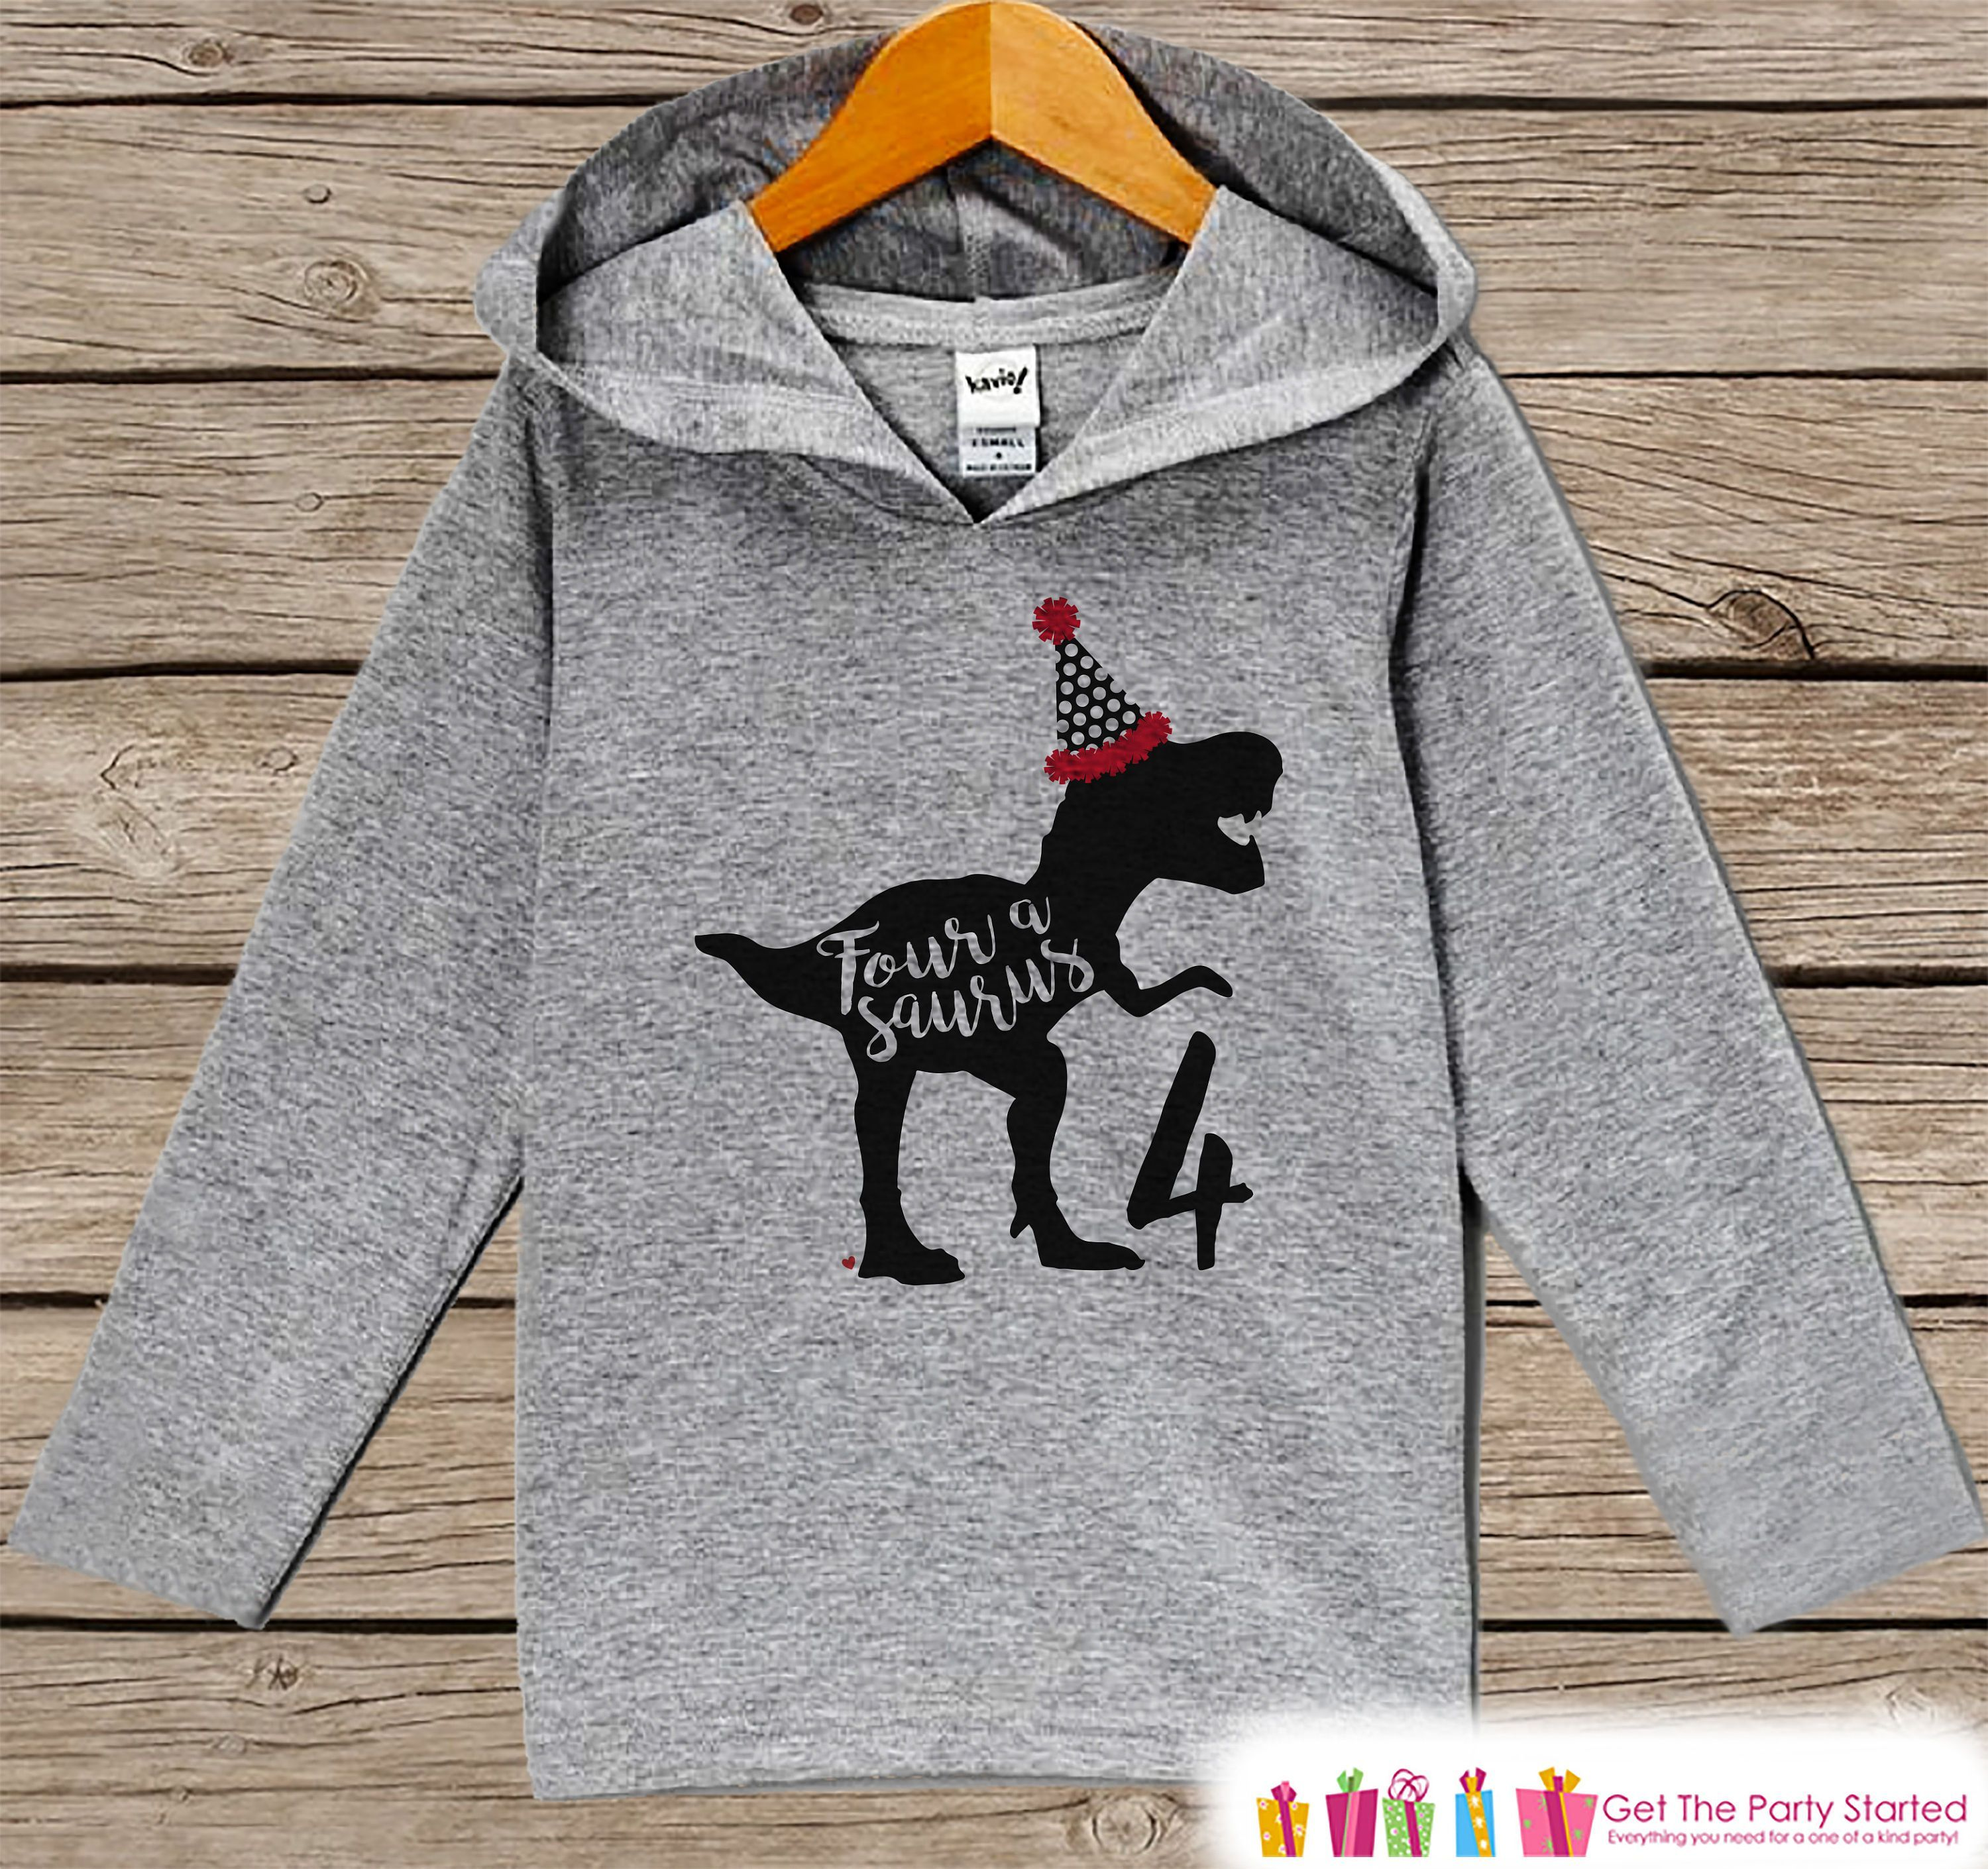 Party Hat Toddler Hoodie Sweatshirt Second Birthday